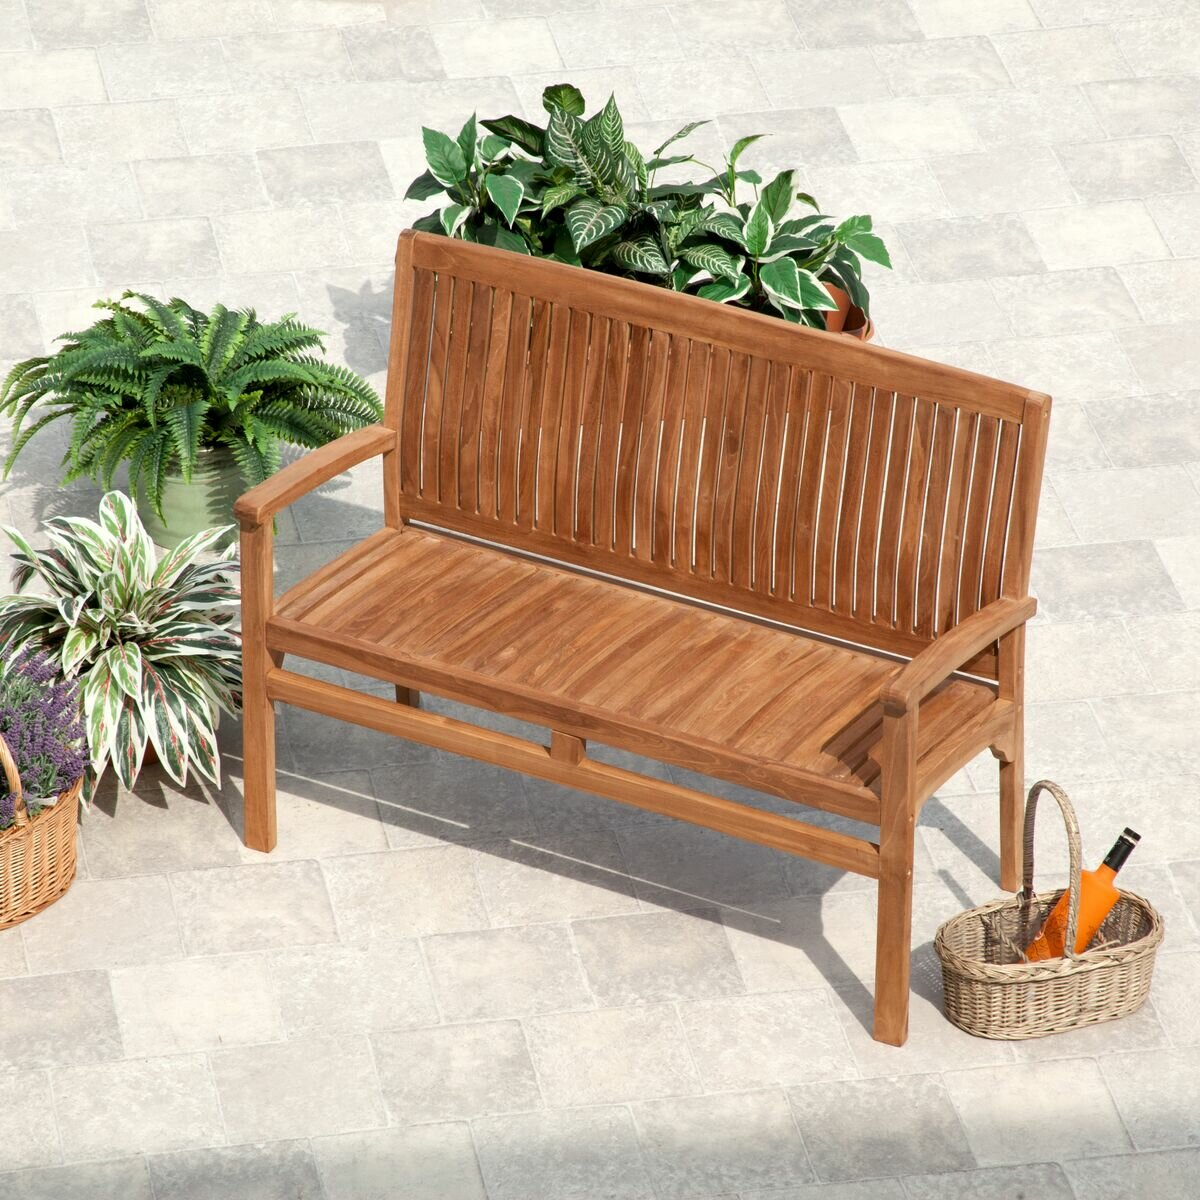 Loon Peak Rohrbach Teak Garden Bench | Wayfair